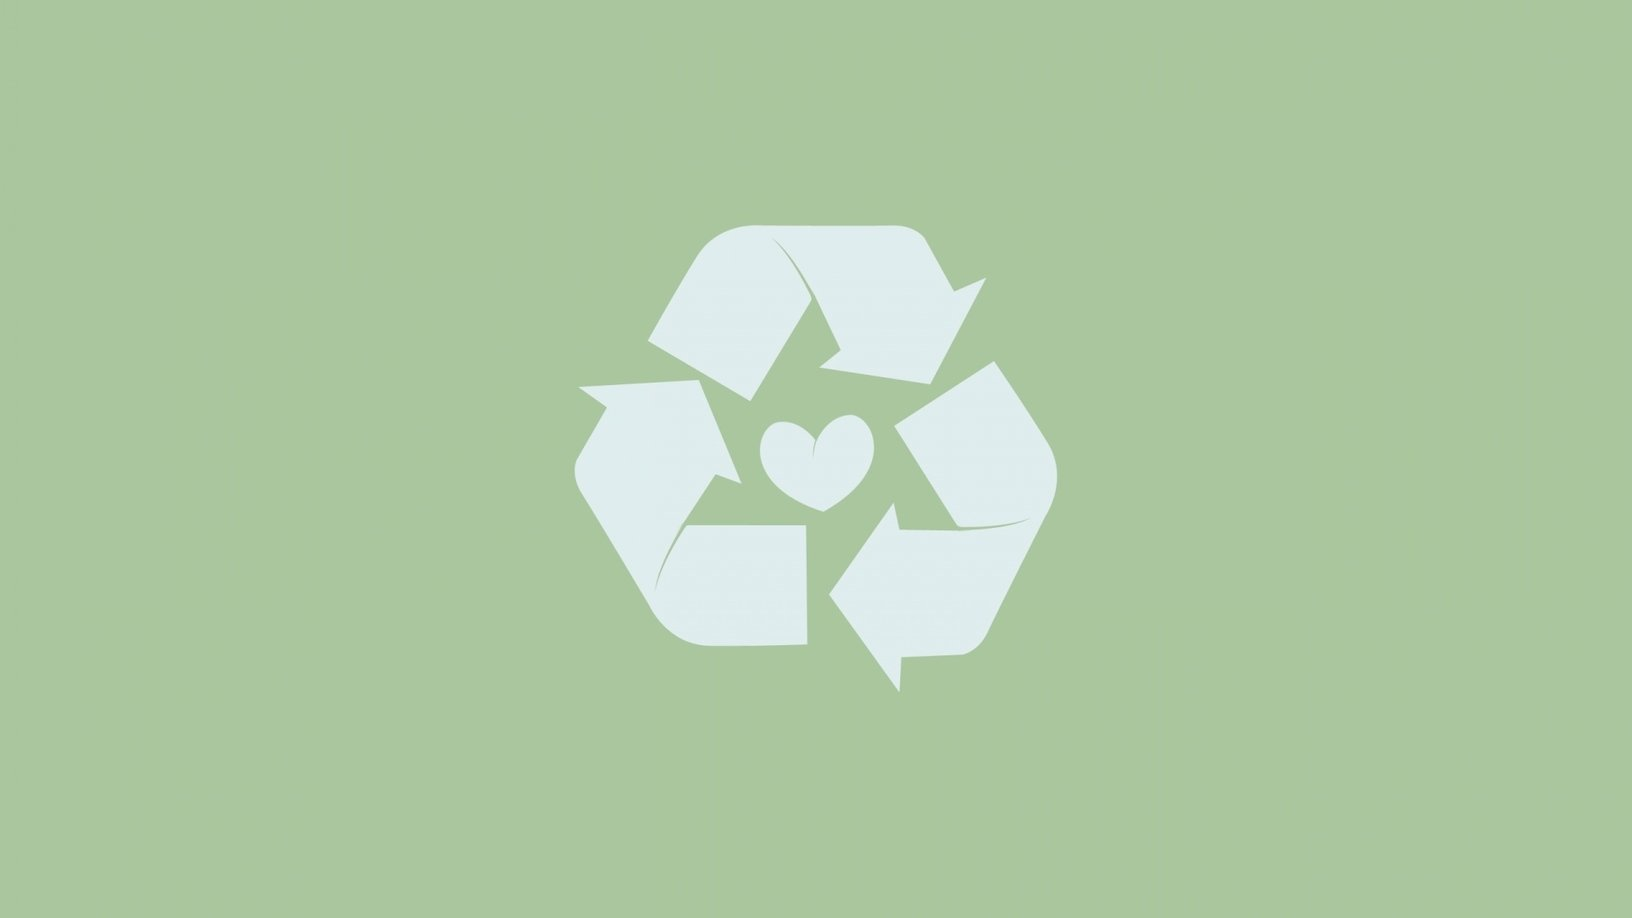 , Electronics Waste Recycling | E-waste Recycle Company –, The Circular Economy